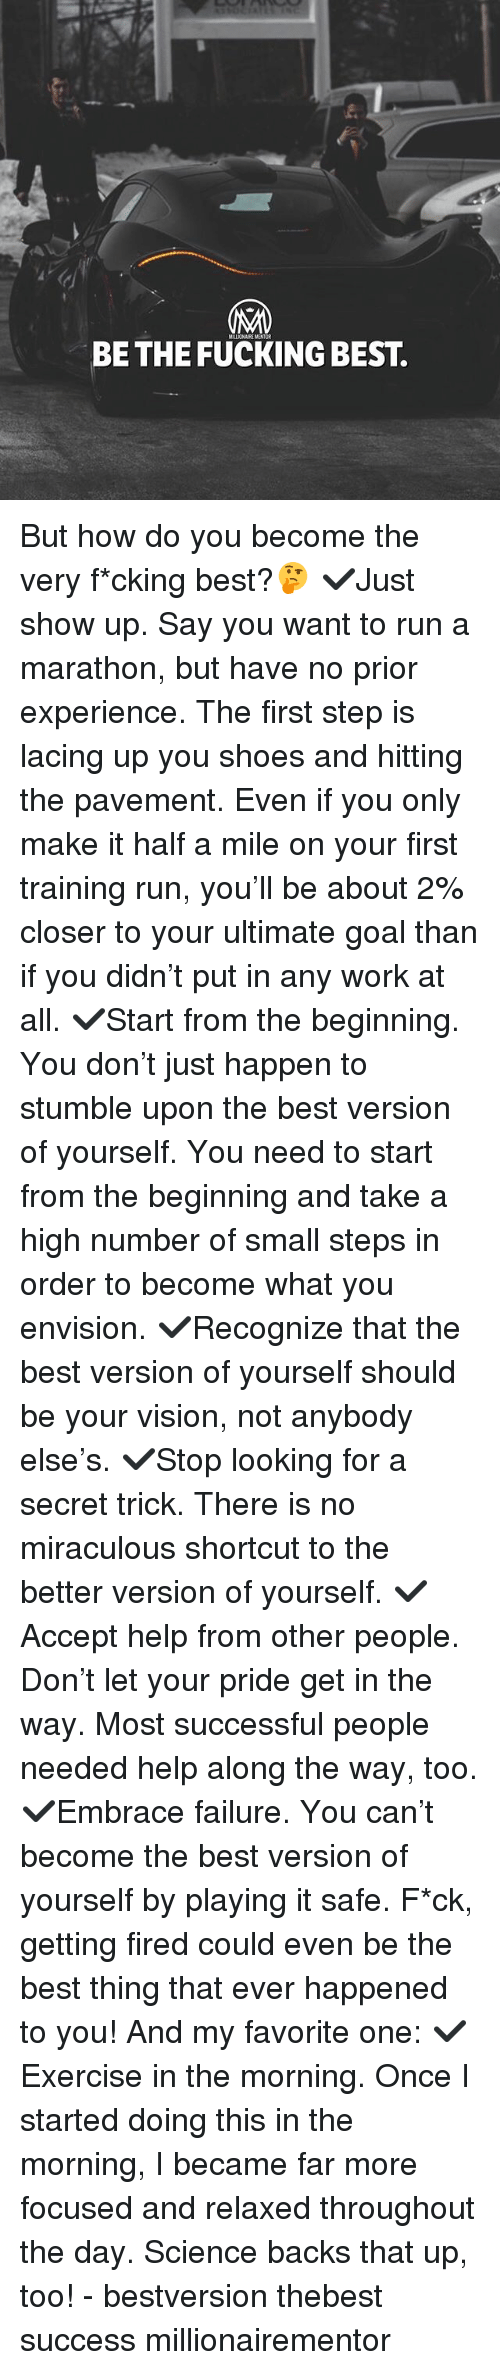 Fucking, Memes, and Run: BE THE FUCKING BEST. But how do you become the very f*cking best?🤔 ✔️Just show up. Say you want to run a marathon, but have no prior experience. The first step is lacing up you shoes and hitting the pavement. Even if you only make it half a mile on your first training run, you'll be about 2% closer to your ultimate goal than if you didn't put in any work at all. ✔️Start from the beginning. You don't just happen to stumble upon the best version of yourself. You need to start from the beginning and take a high number of small steps in order to become what you envision. ✔️Recognize that the best version of yourself should be your vision, not anybody else's. ✔️Stop looking for a secret trick. There is no miraculous shortcut to the better version of yourself. ✔️Accept help from other people. Don't let your pride get in the way. Most successful people needed help along the way, too. ✔️Embrace failure. You can't become the best version of yourself by playing it safe. F*ck, getting fired could even be the best thing that ever happened to you! And my favorite one: ✔️Exercise in the morning. Once I started doing this in the morning, I became far more focused and relaxed throughout the day. Science backs that up, too! - bestversion thebest success millionairementor